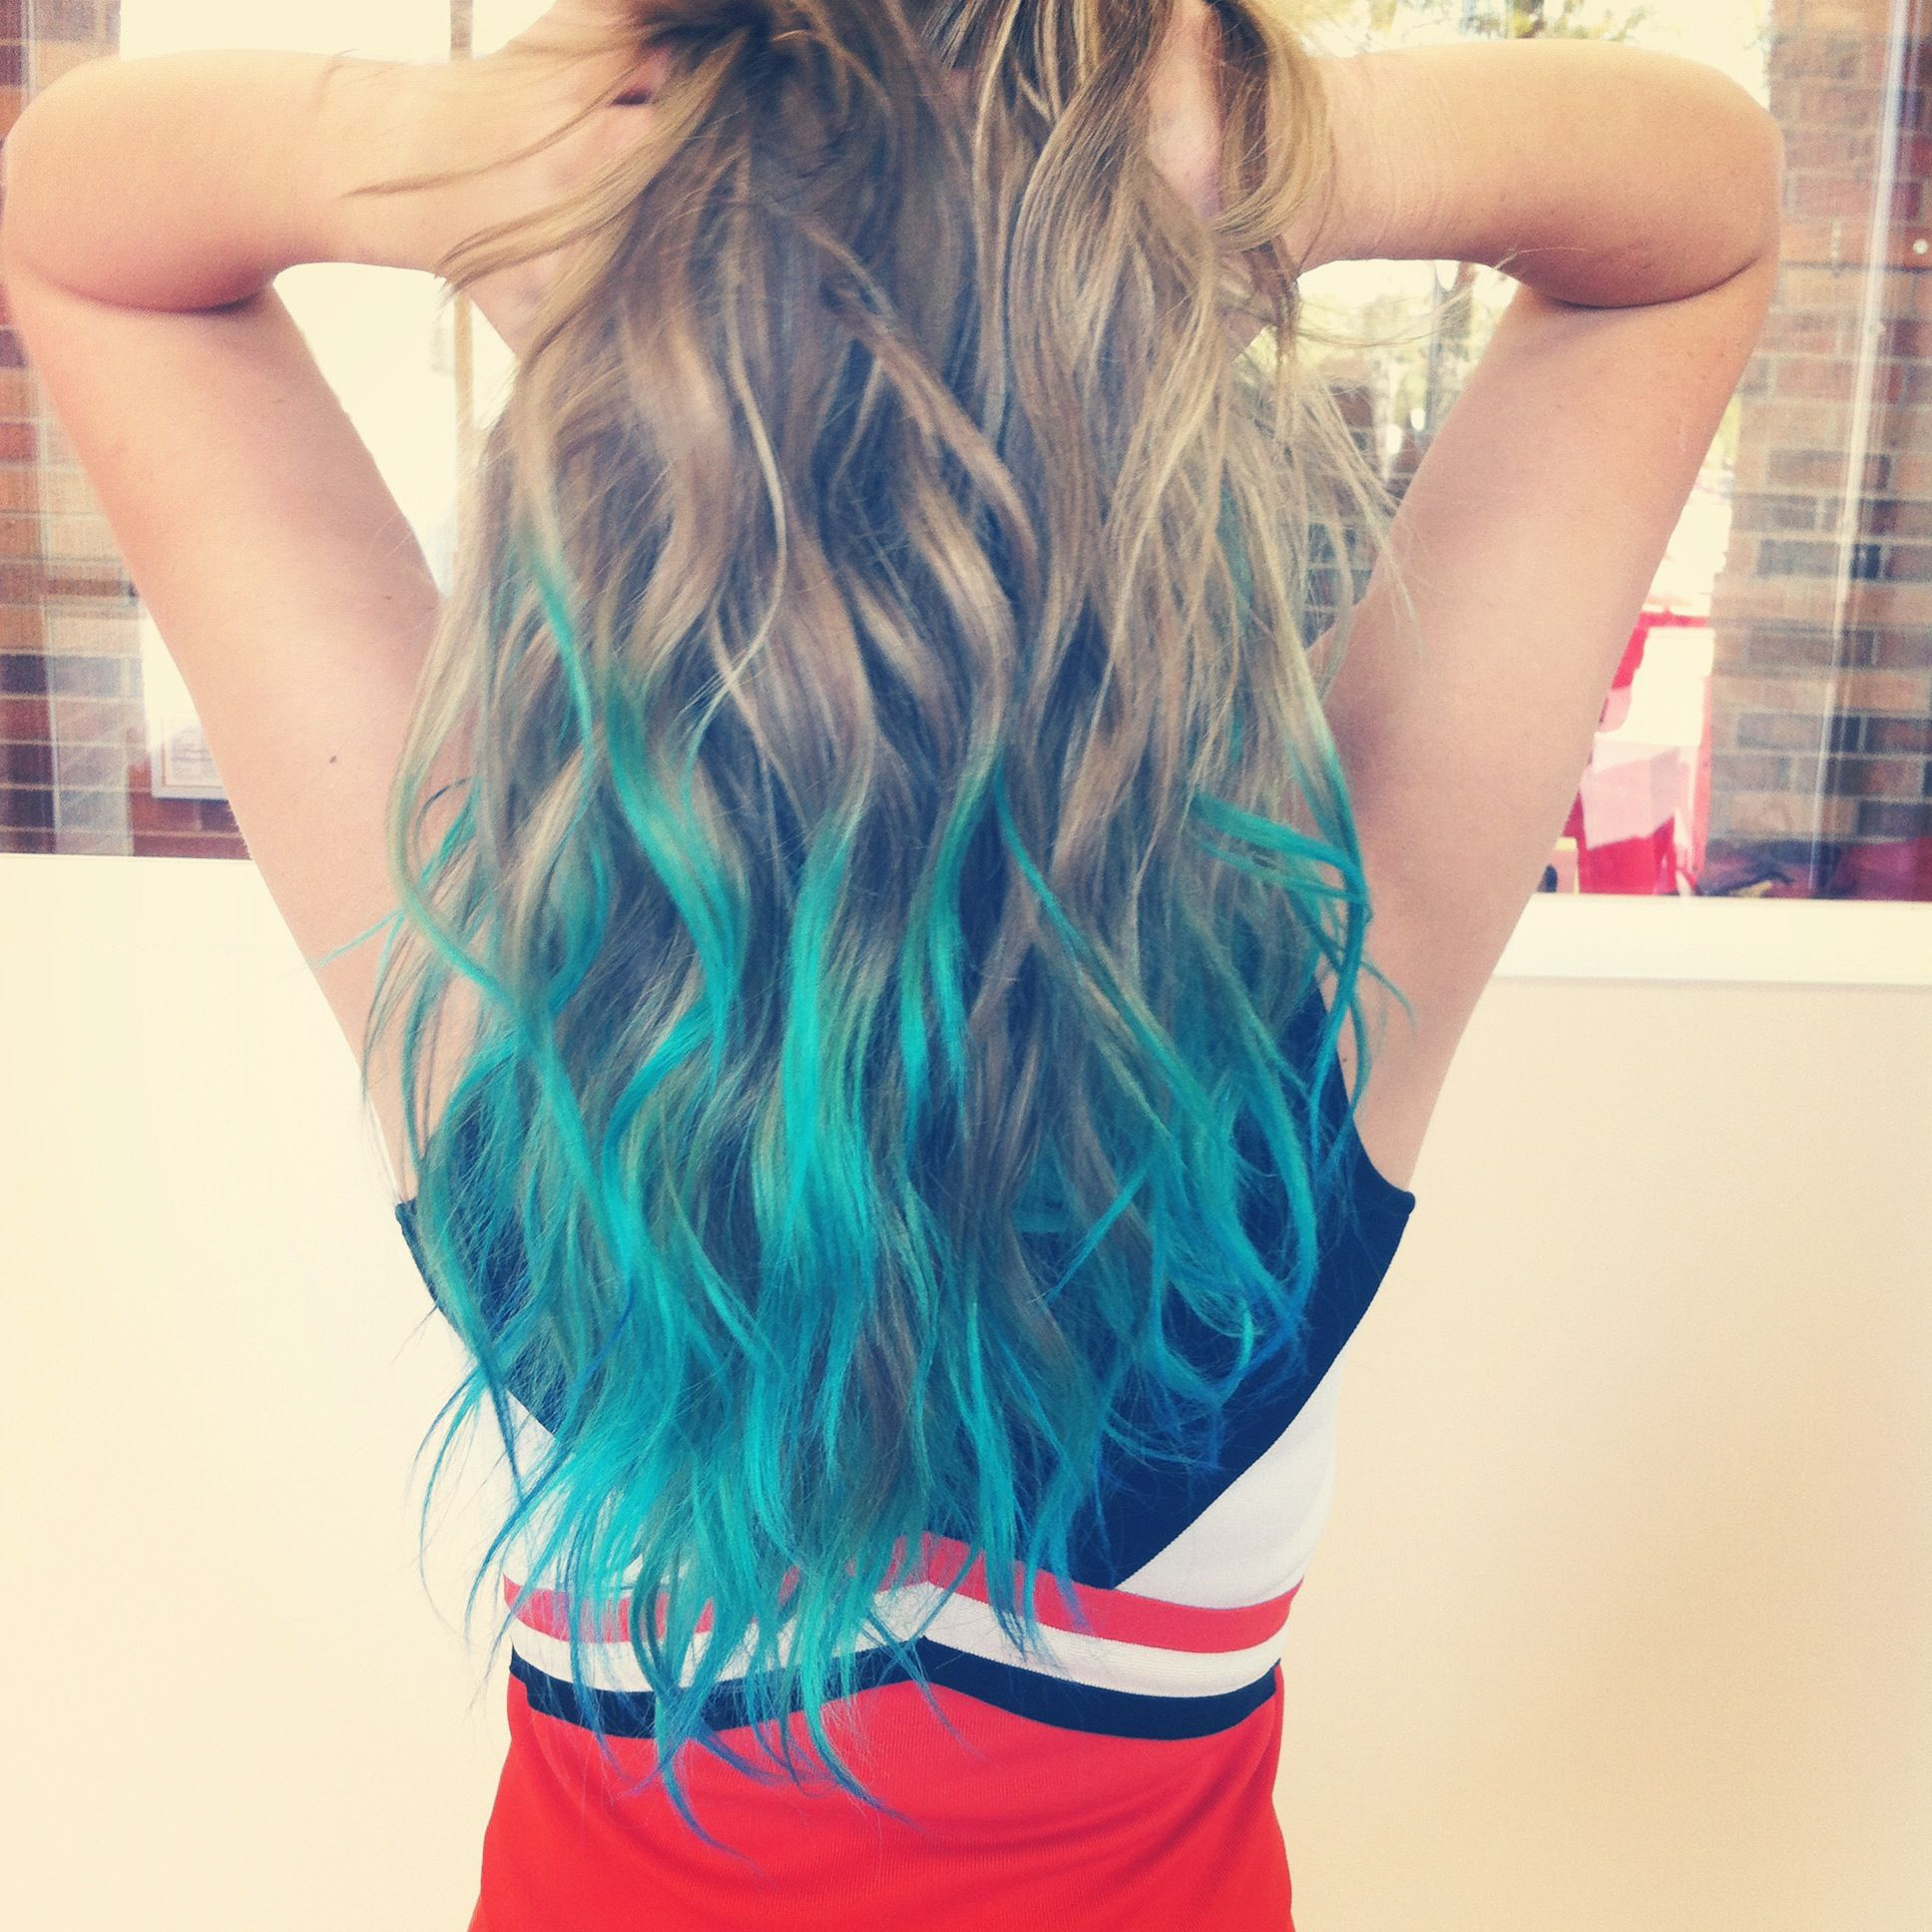 Hair Trends 2015 10 Hottest Blue Dip Dye Hair Colors For Long Hairstyles Dip Dye Hair Blue Dip Dye Hair Hair Dye Tips